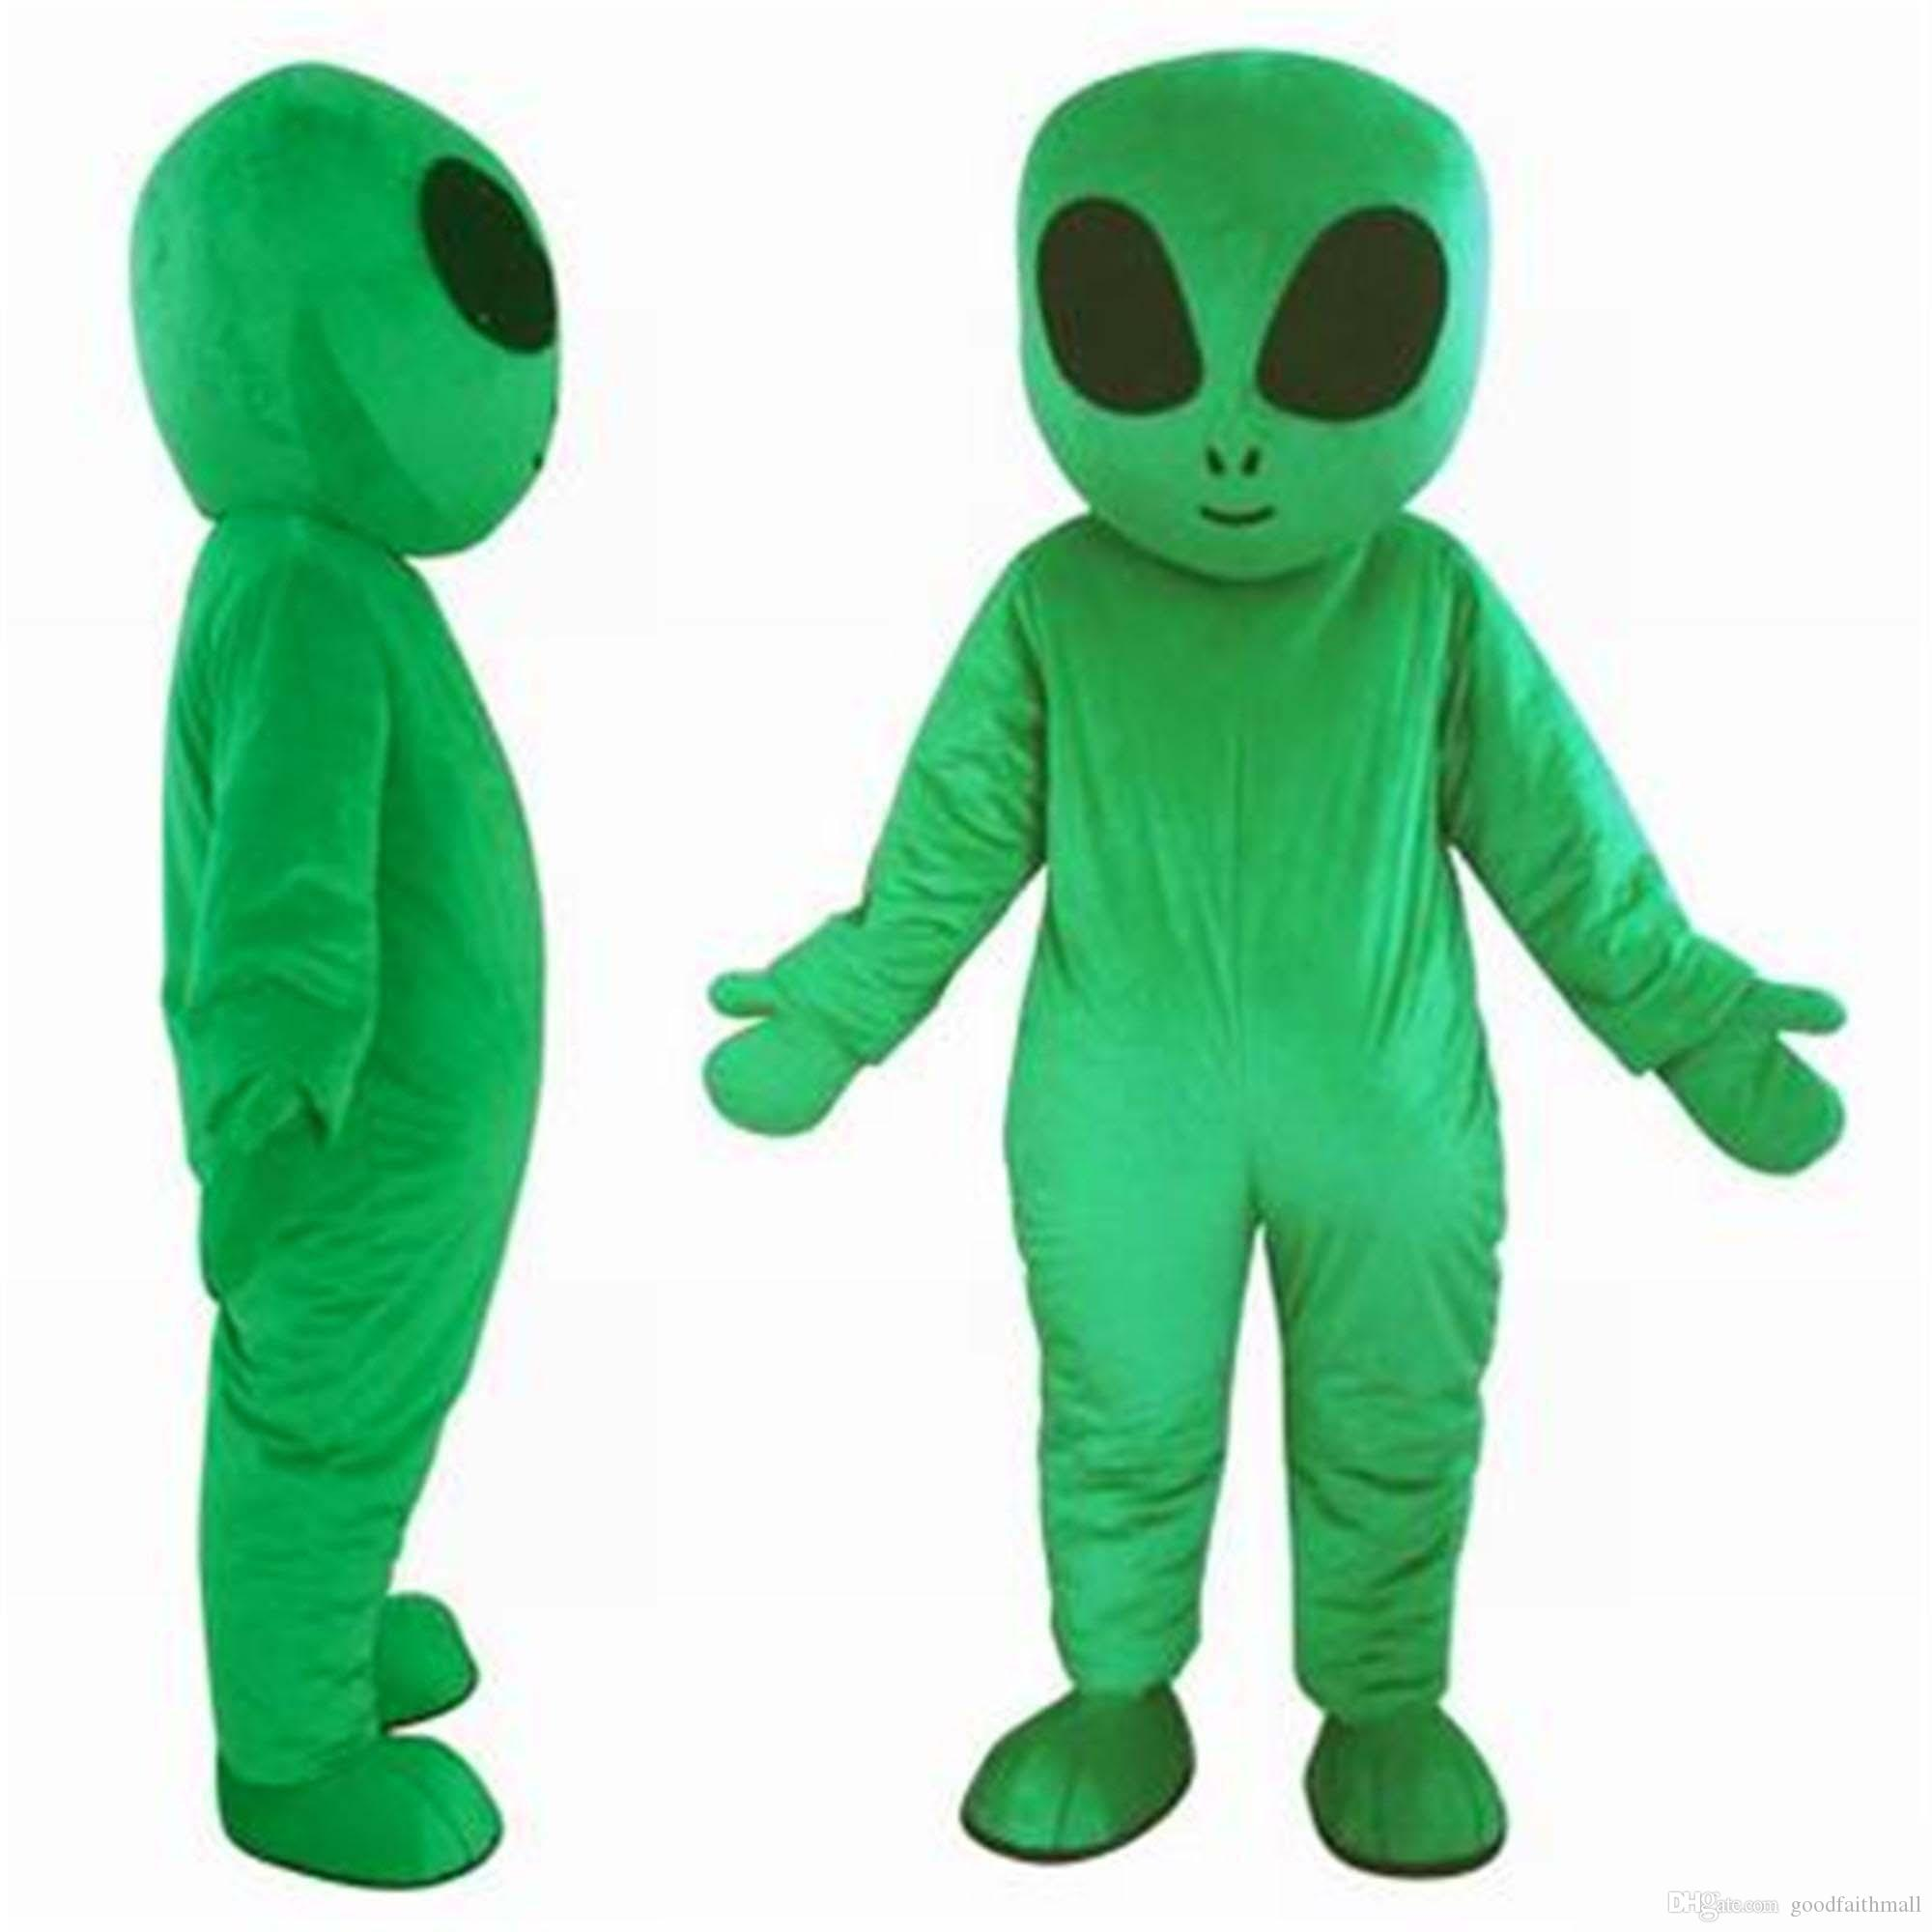 2018 High quality hot green UFO aliens mascot costume for adults E.T. alien mascot suit for sell